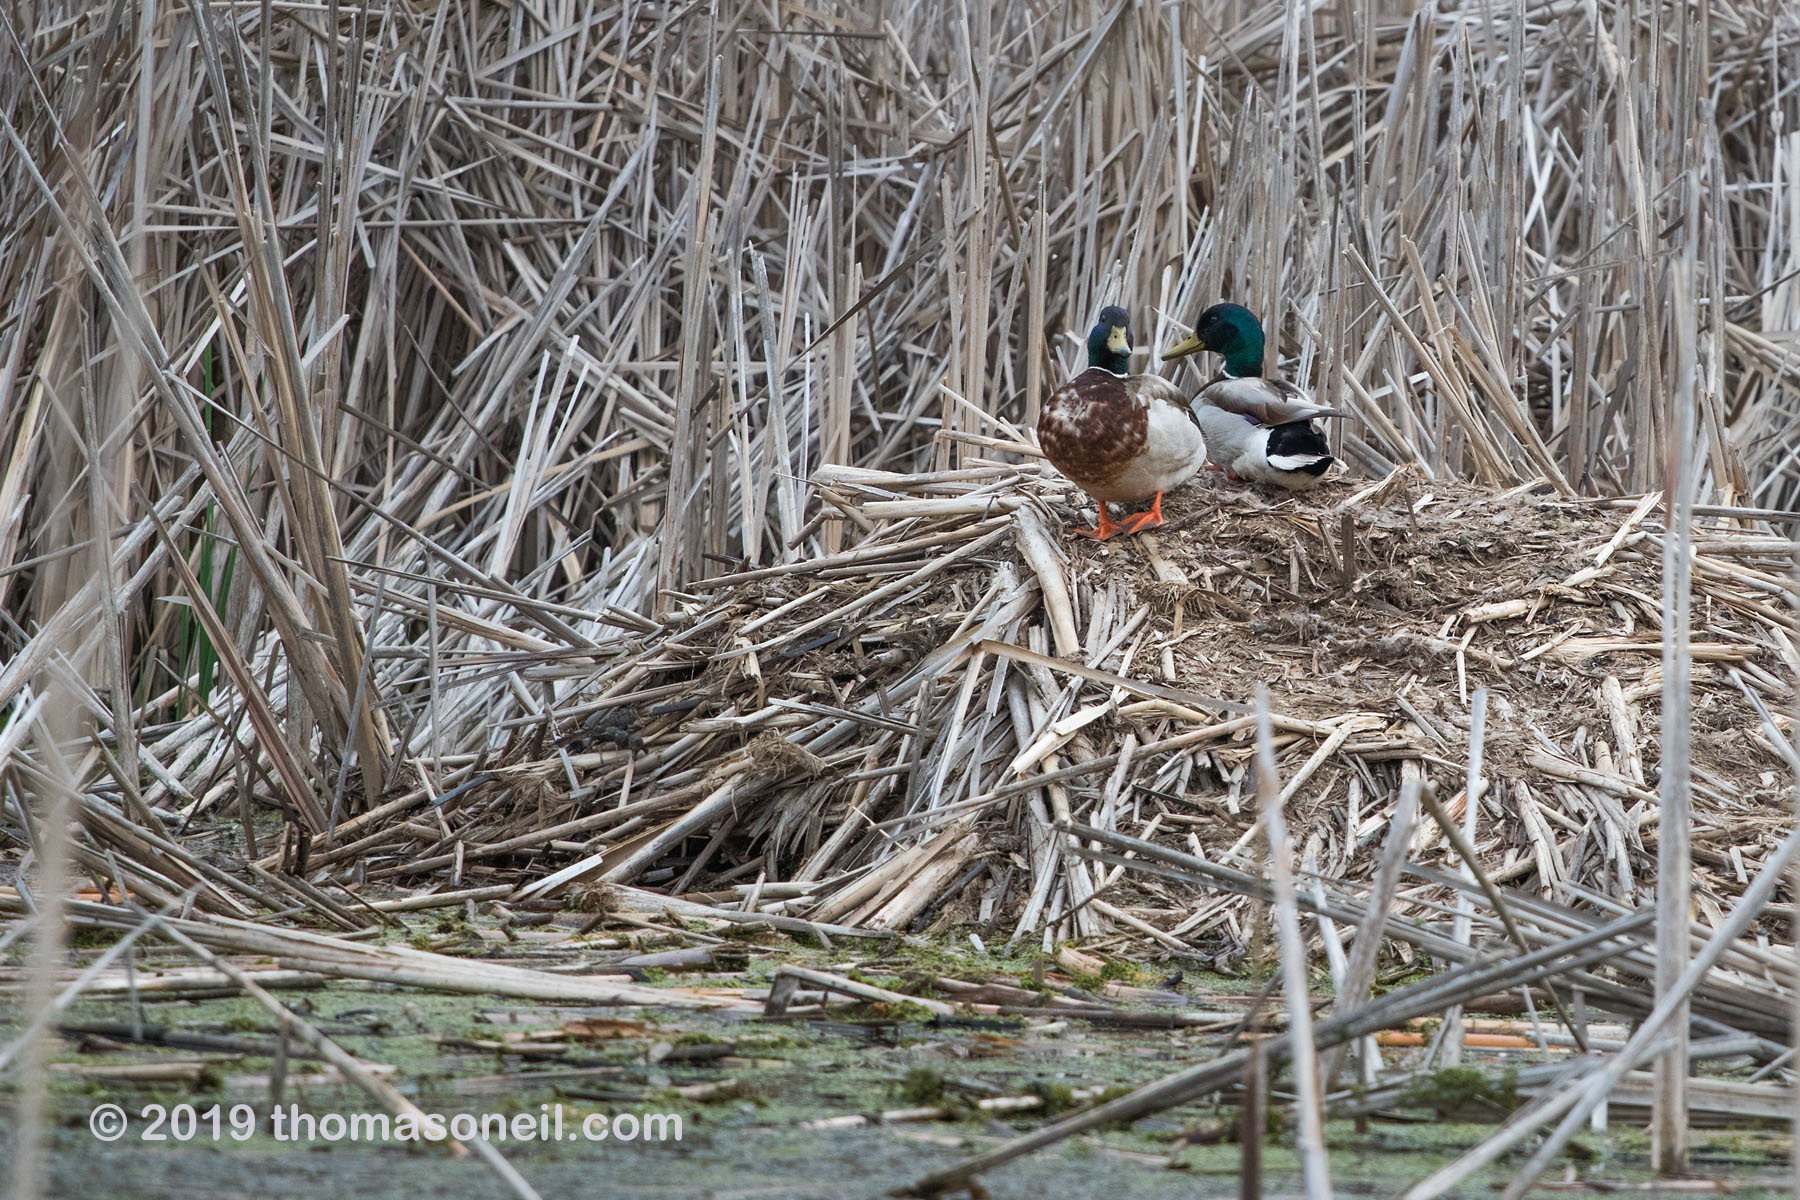 Sneaking in three images from close to home, starting with ducks on what I believe is a muskrat hut in a pond near my house, May 2019.  Click for next photo.